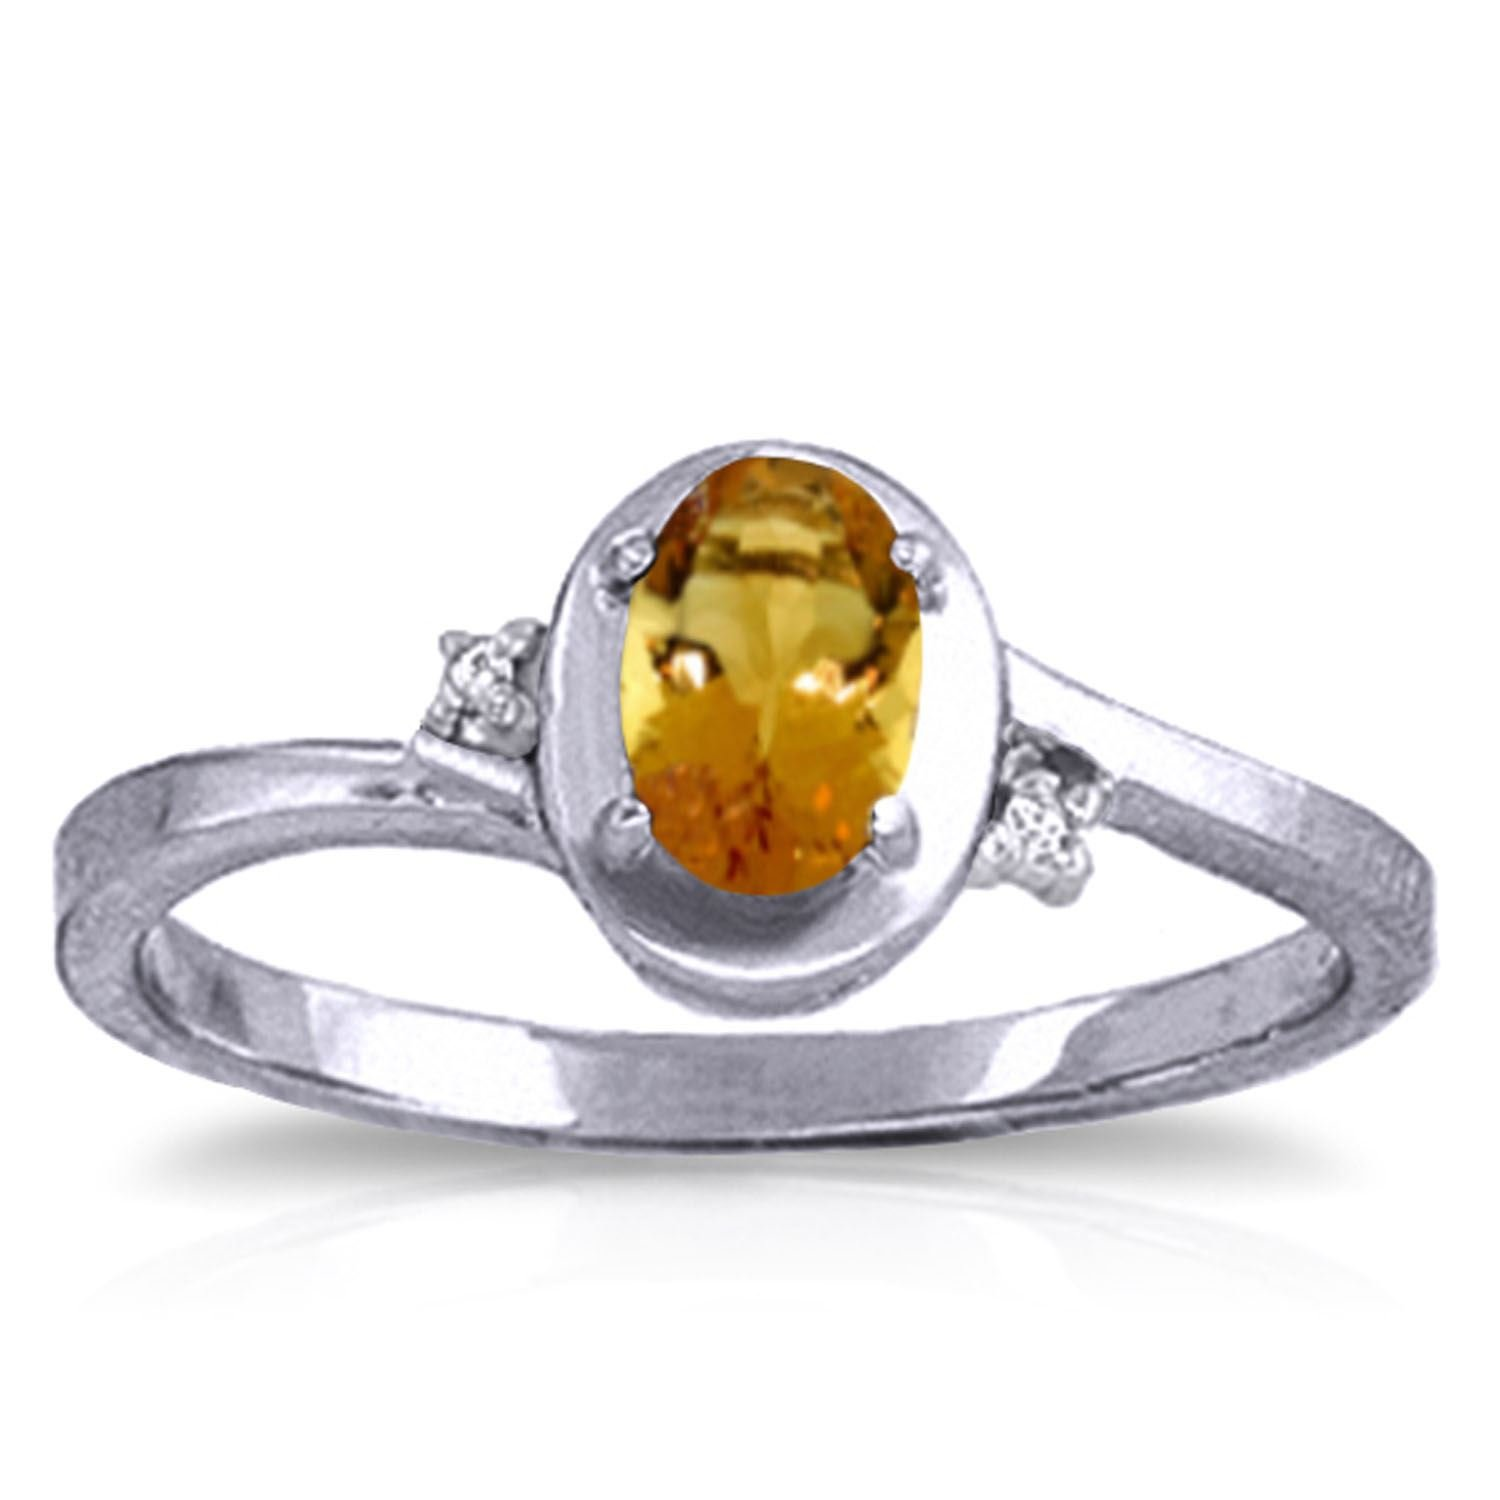 ALARRI 0.51 Carat 14K Solid White Gold Love Goes On Citrine Diamond Ring With Ring Size 10.5